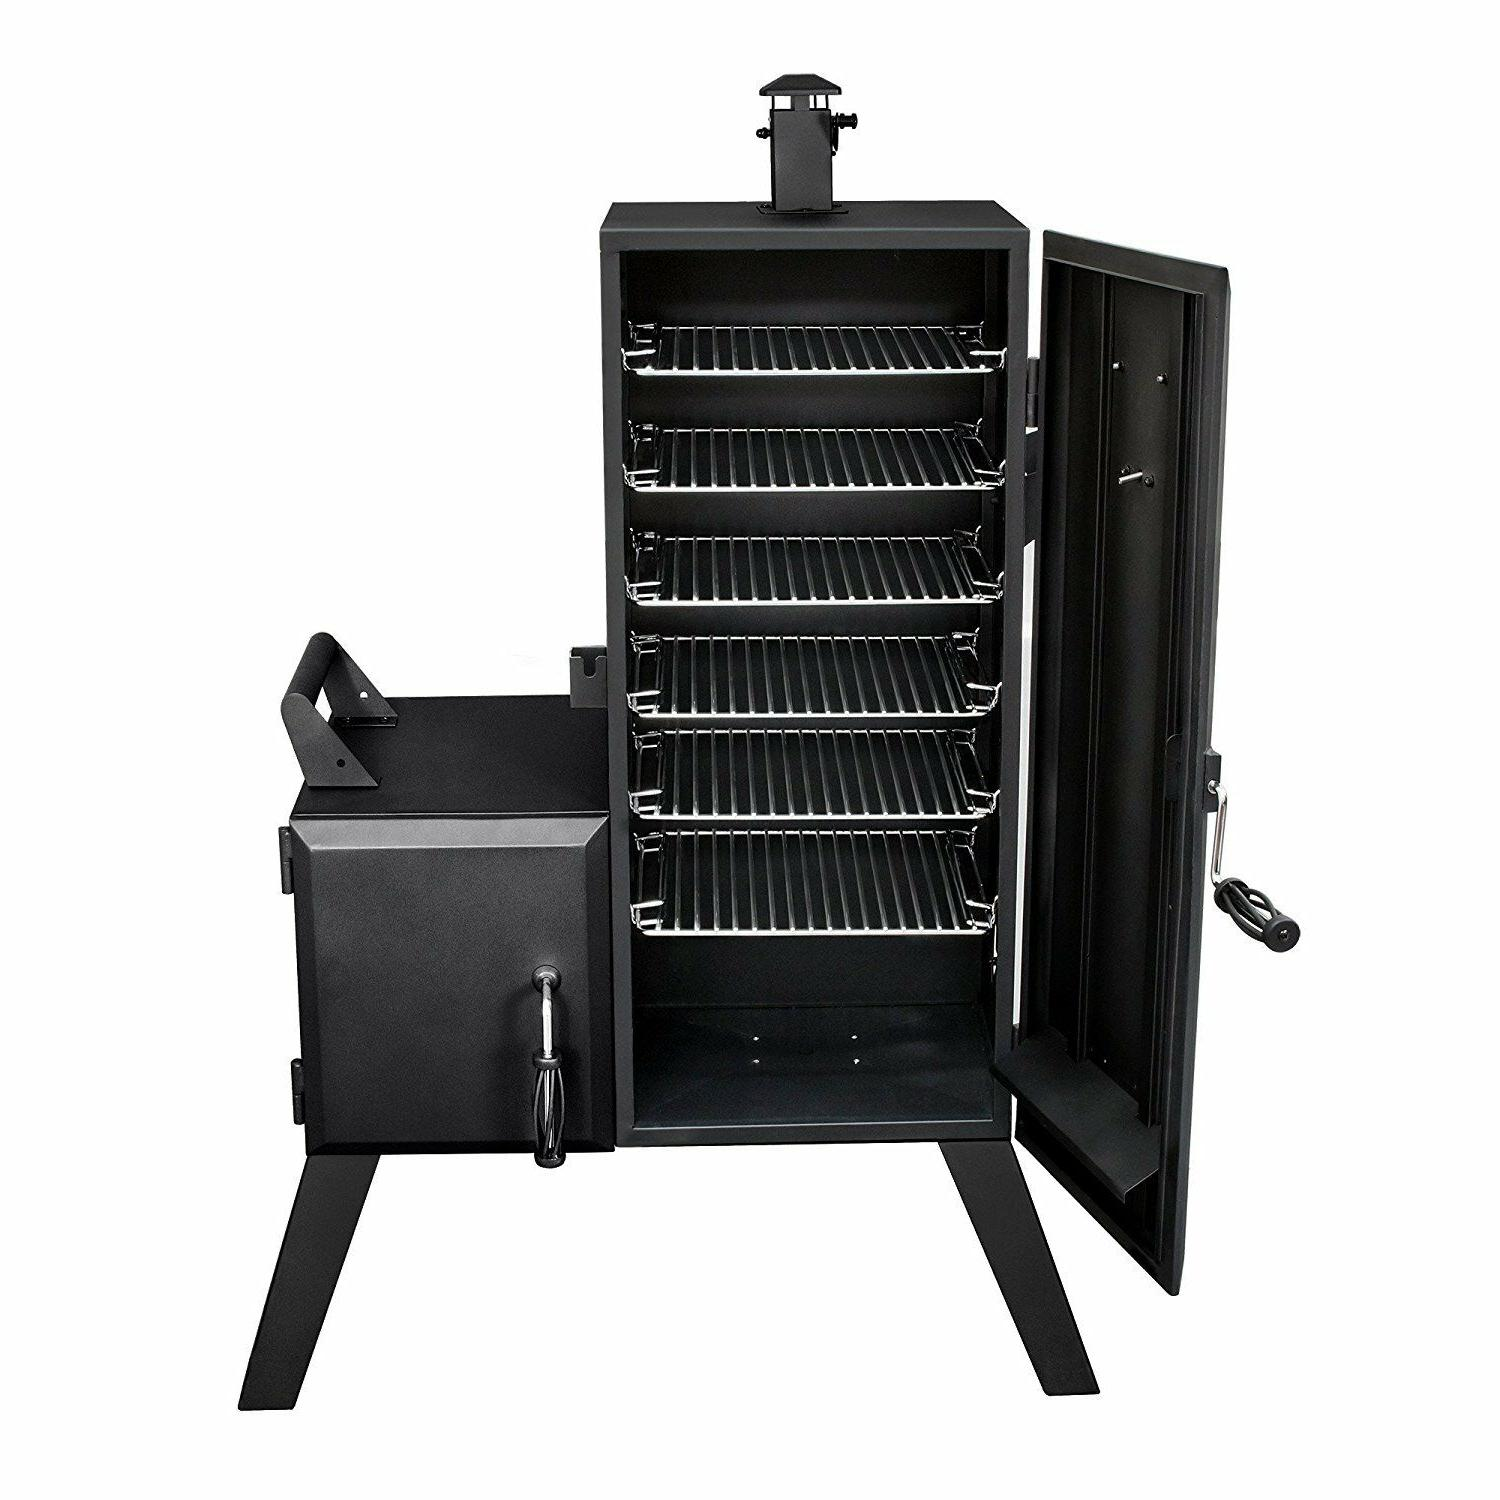 Charcoal Smoker Offset Outdoor BBQ Grill